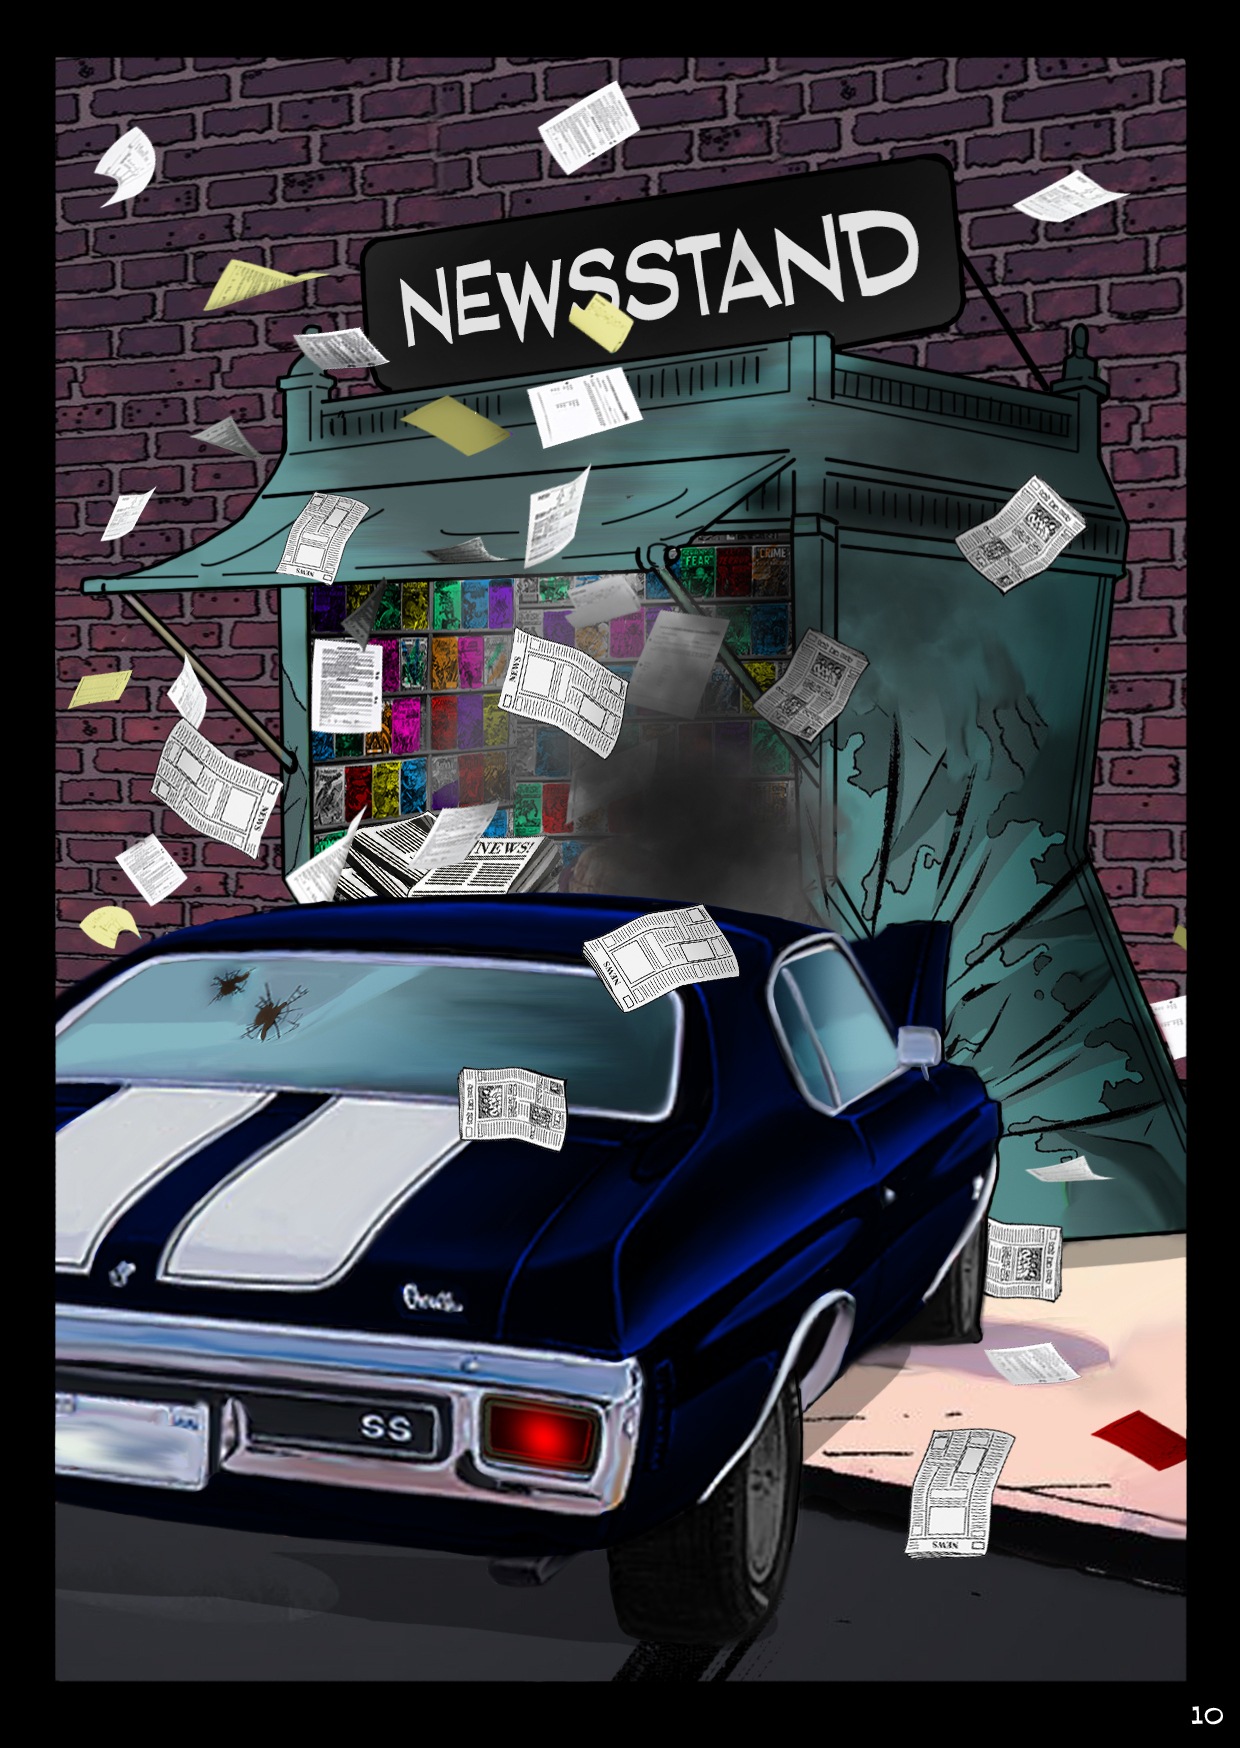 Bobby crashes his Chevelle into an urban newsstand.